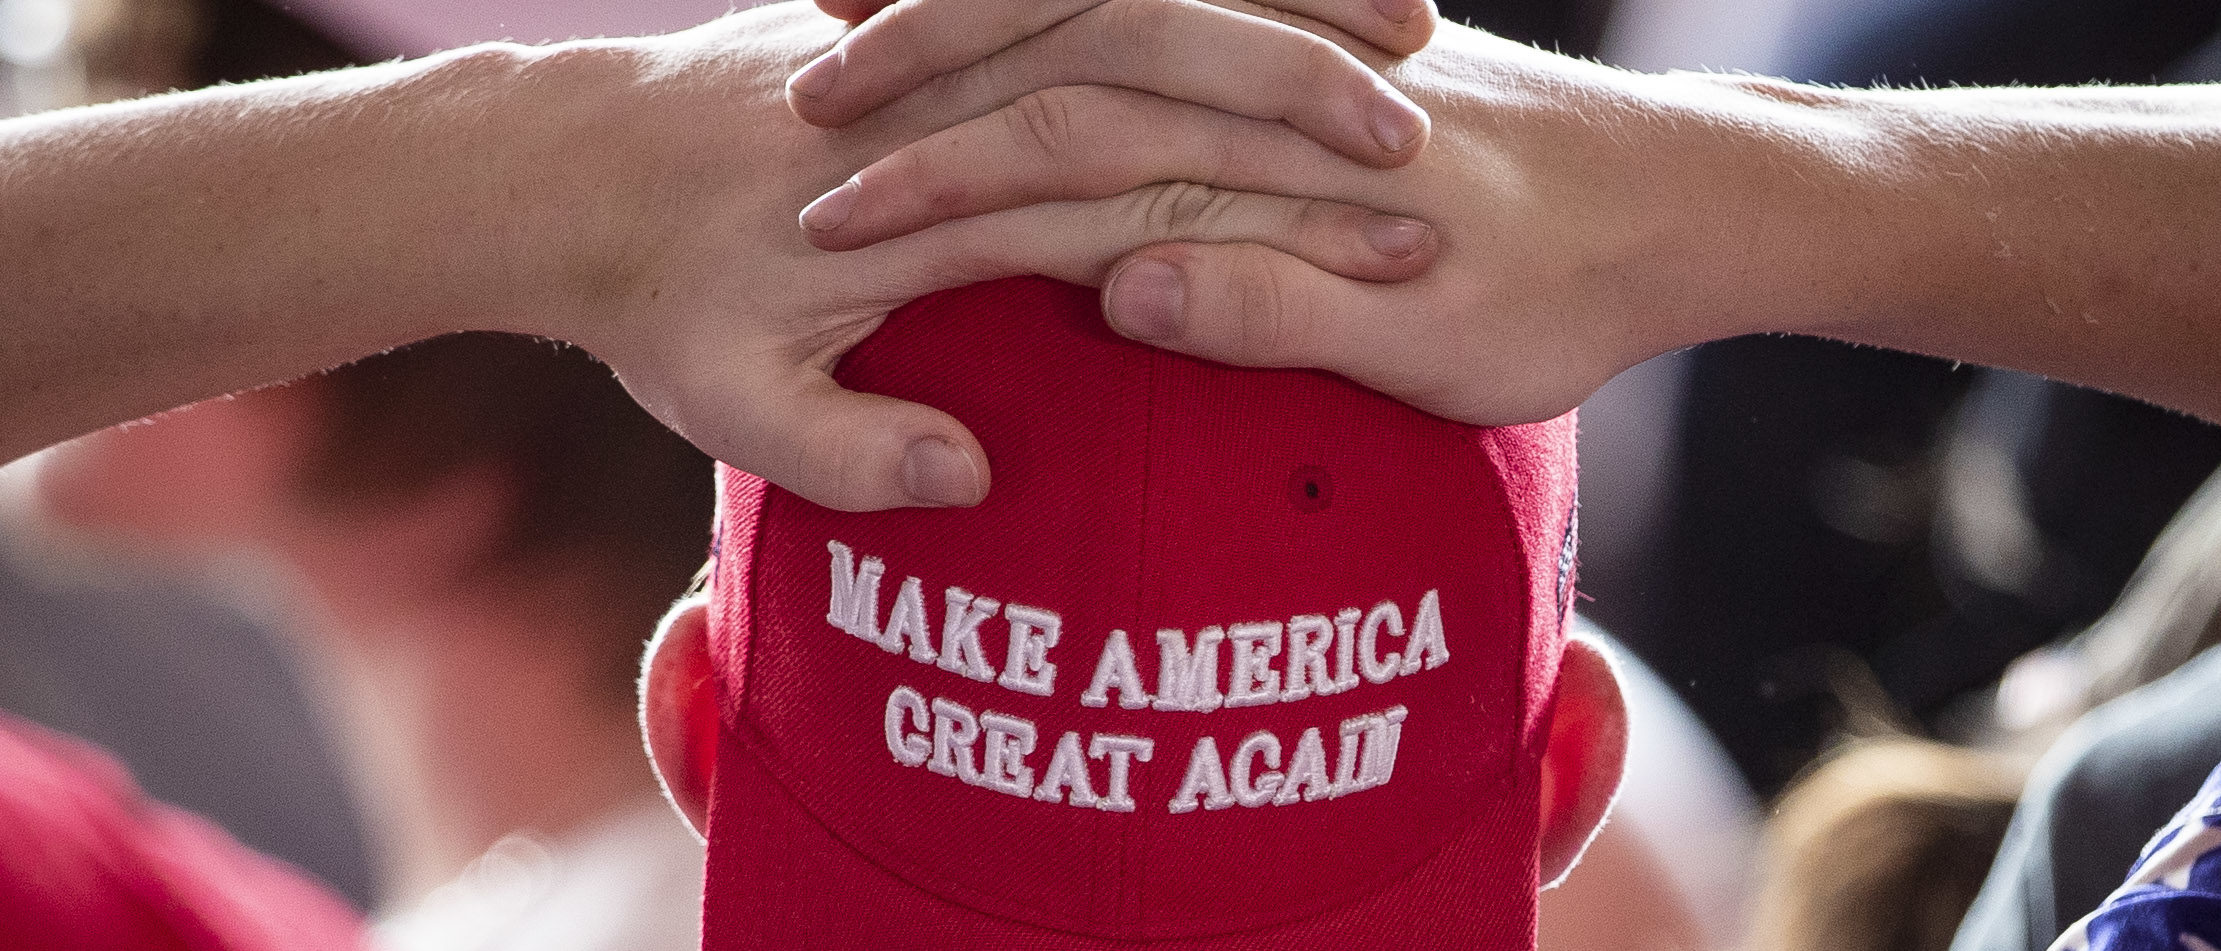 DC Barbecue Joint Kicks Out Patron For Harassing Customer In MAGA Hat